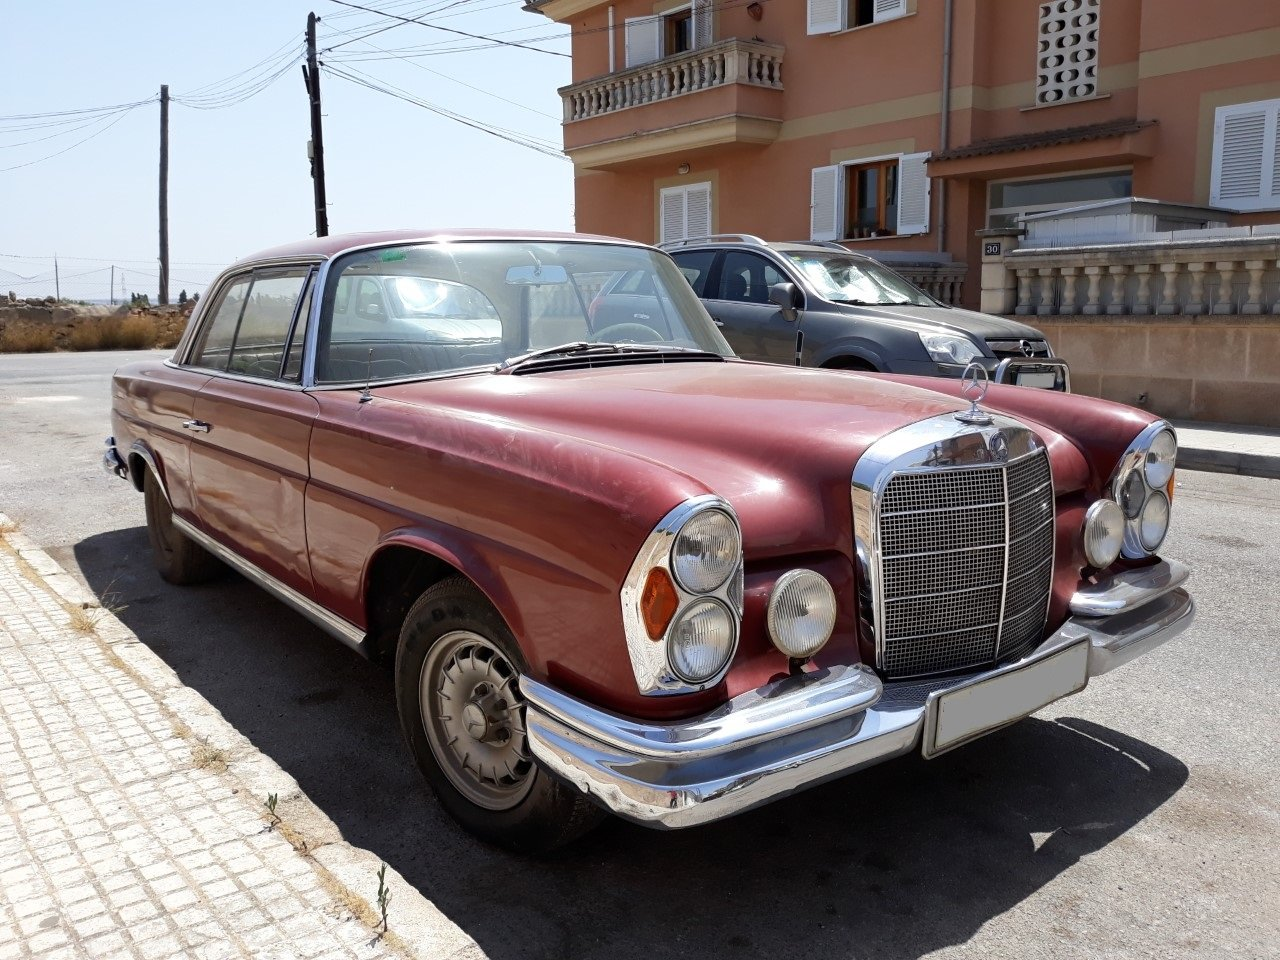 1967 LHD-Mercedes Benz 250SE Coupe-manual transmission For Sale (picture 1 of 6)